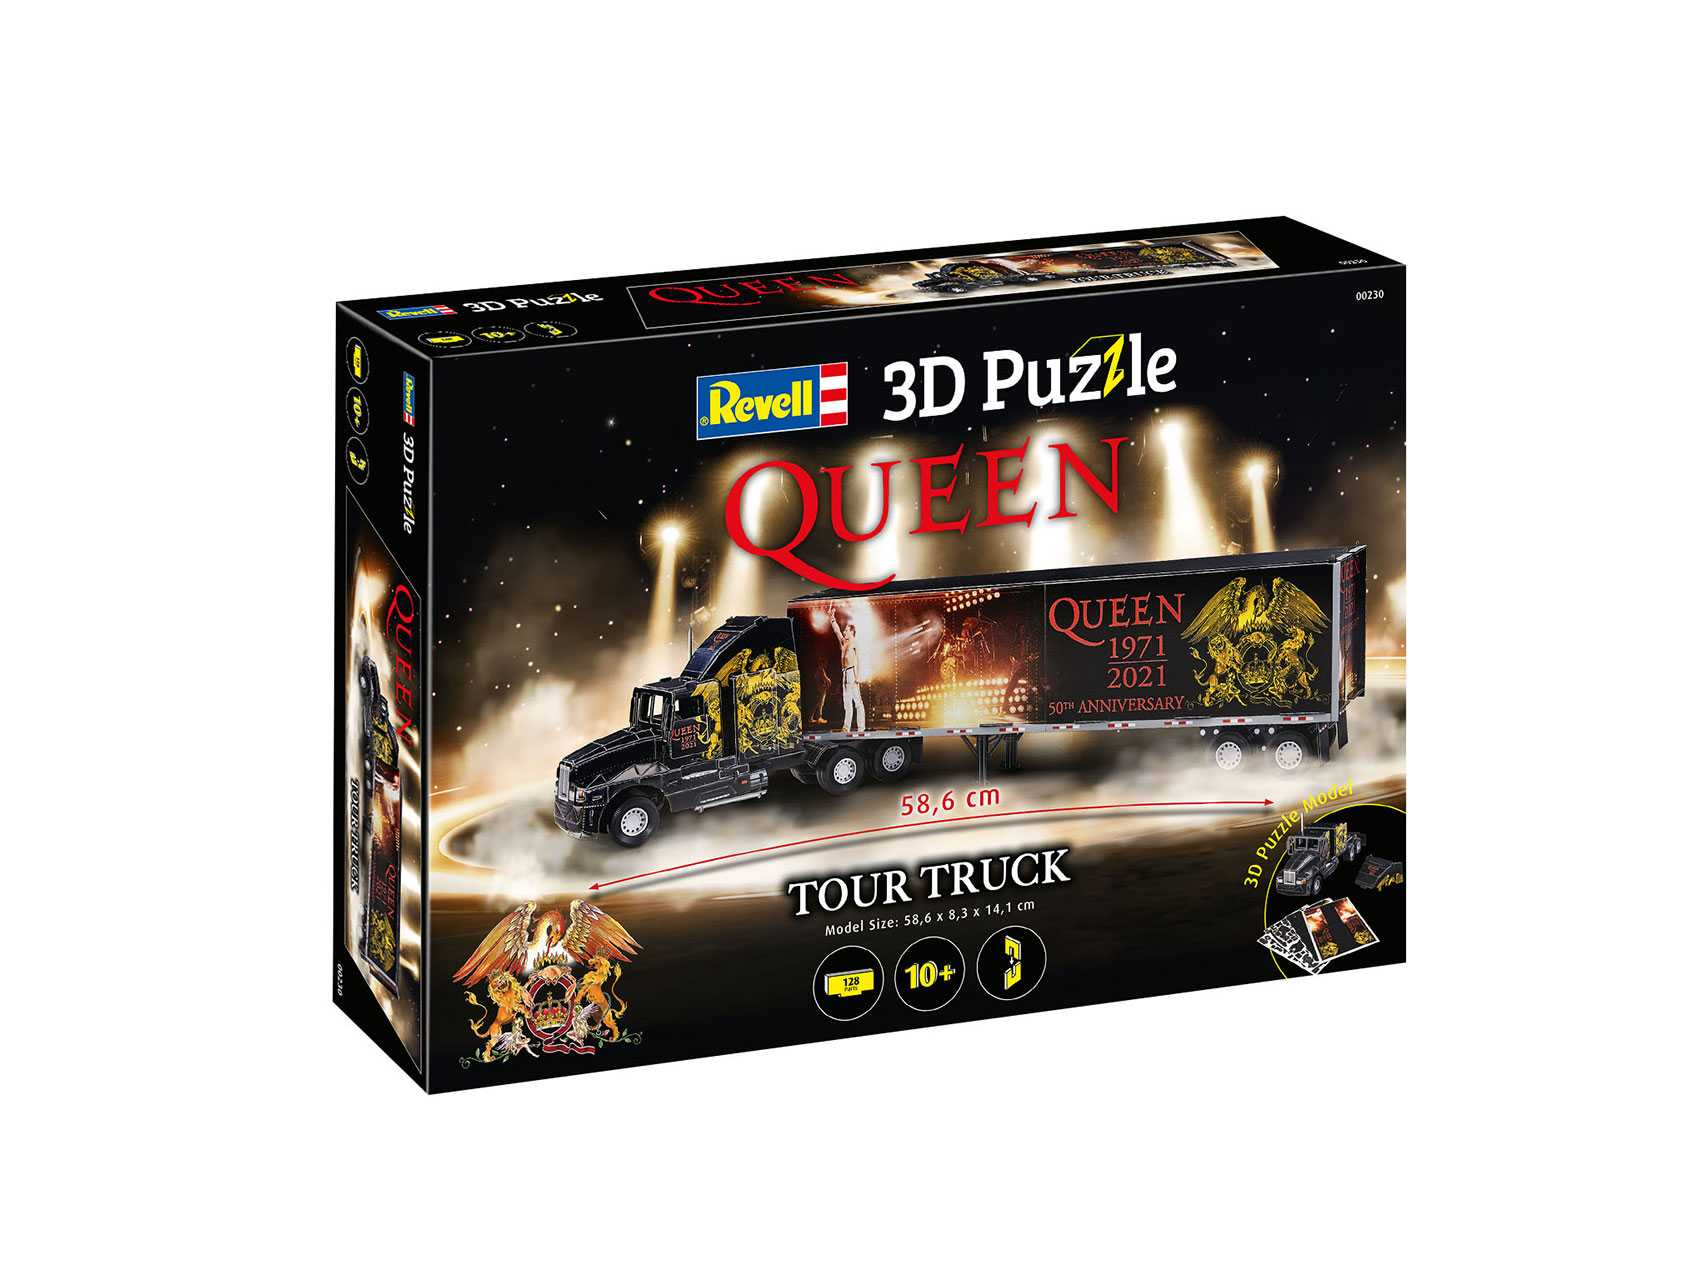 3D Puzzle Revell – QUEEN Tour Truck (50th Anniversary)